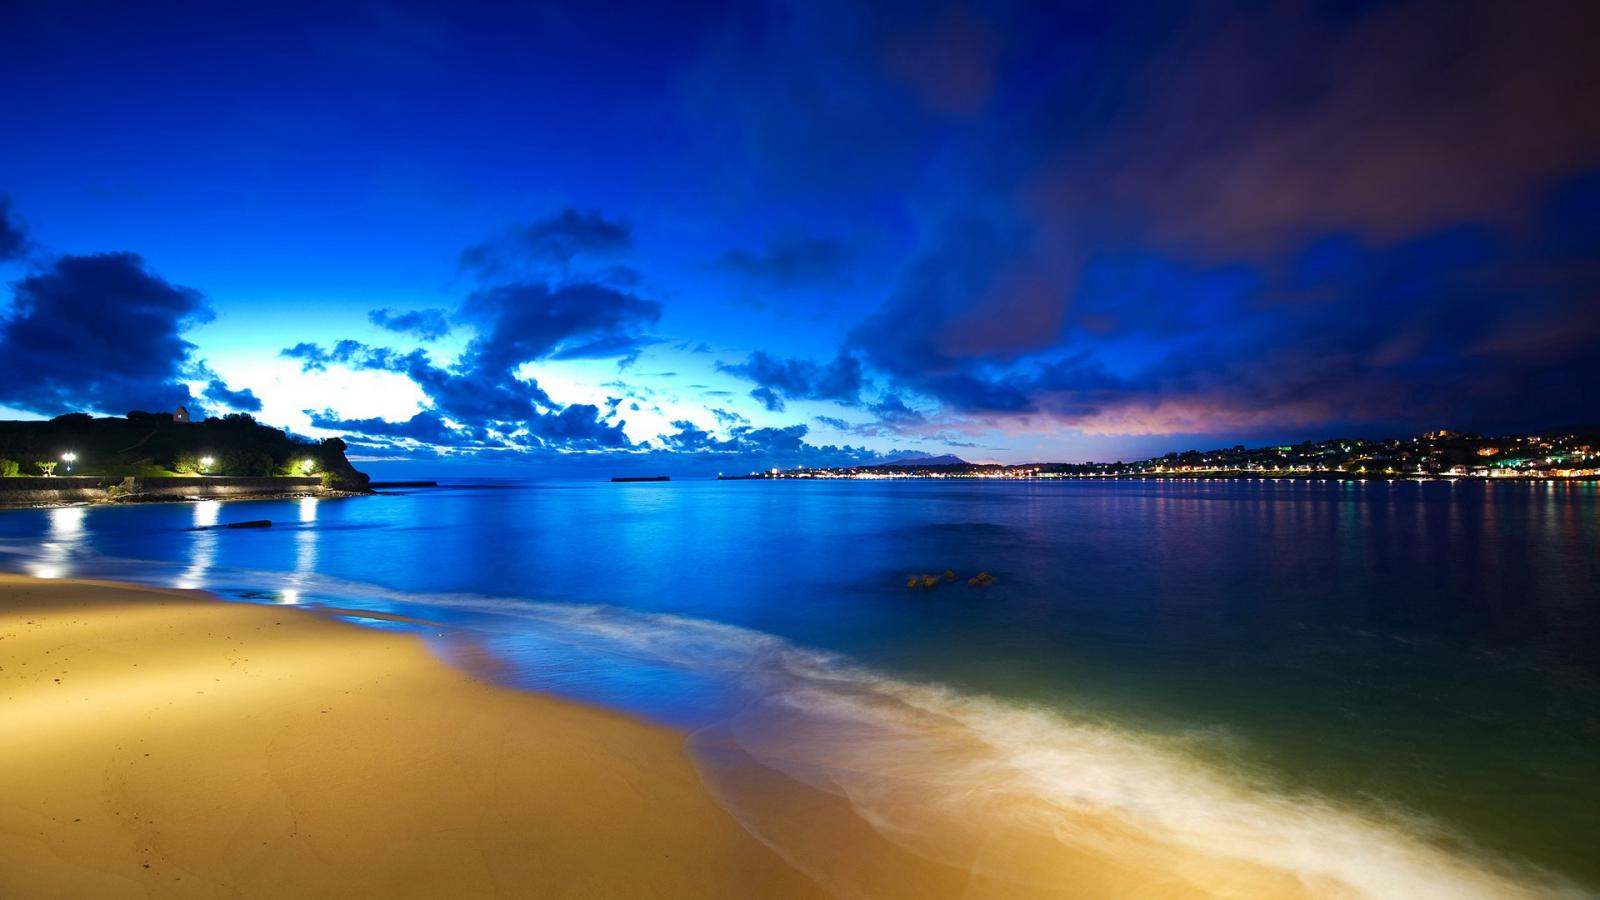 Best Beach Night Wallpaper Android 90